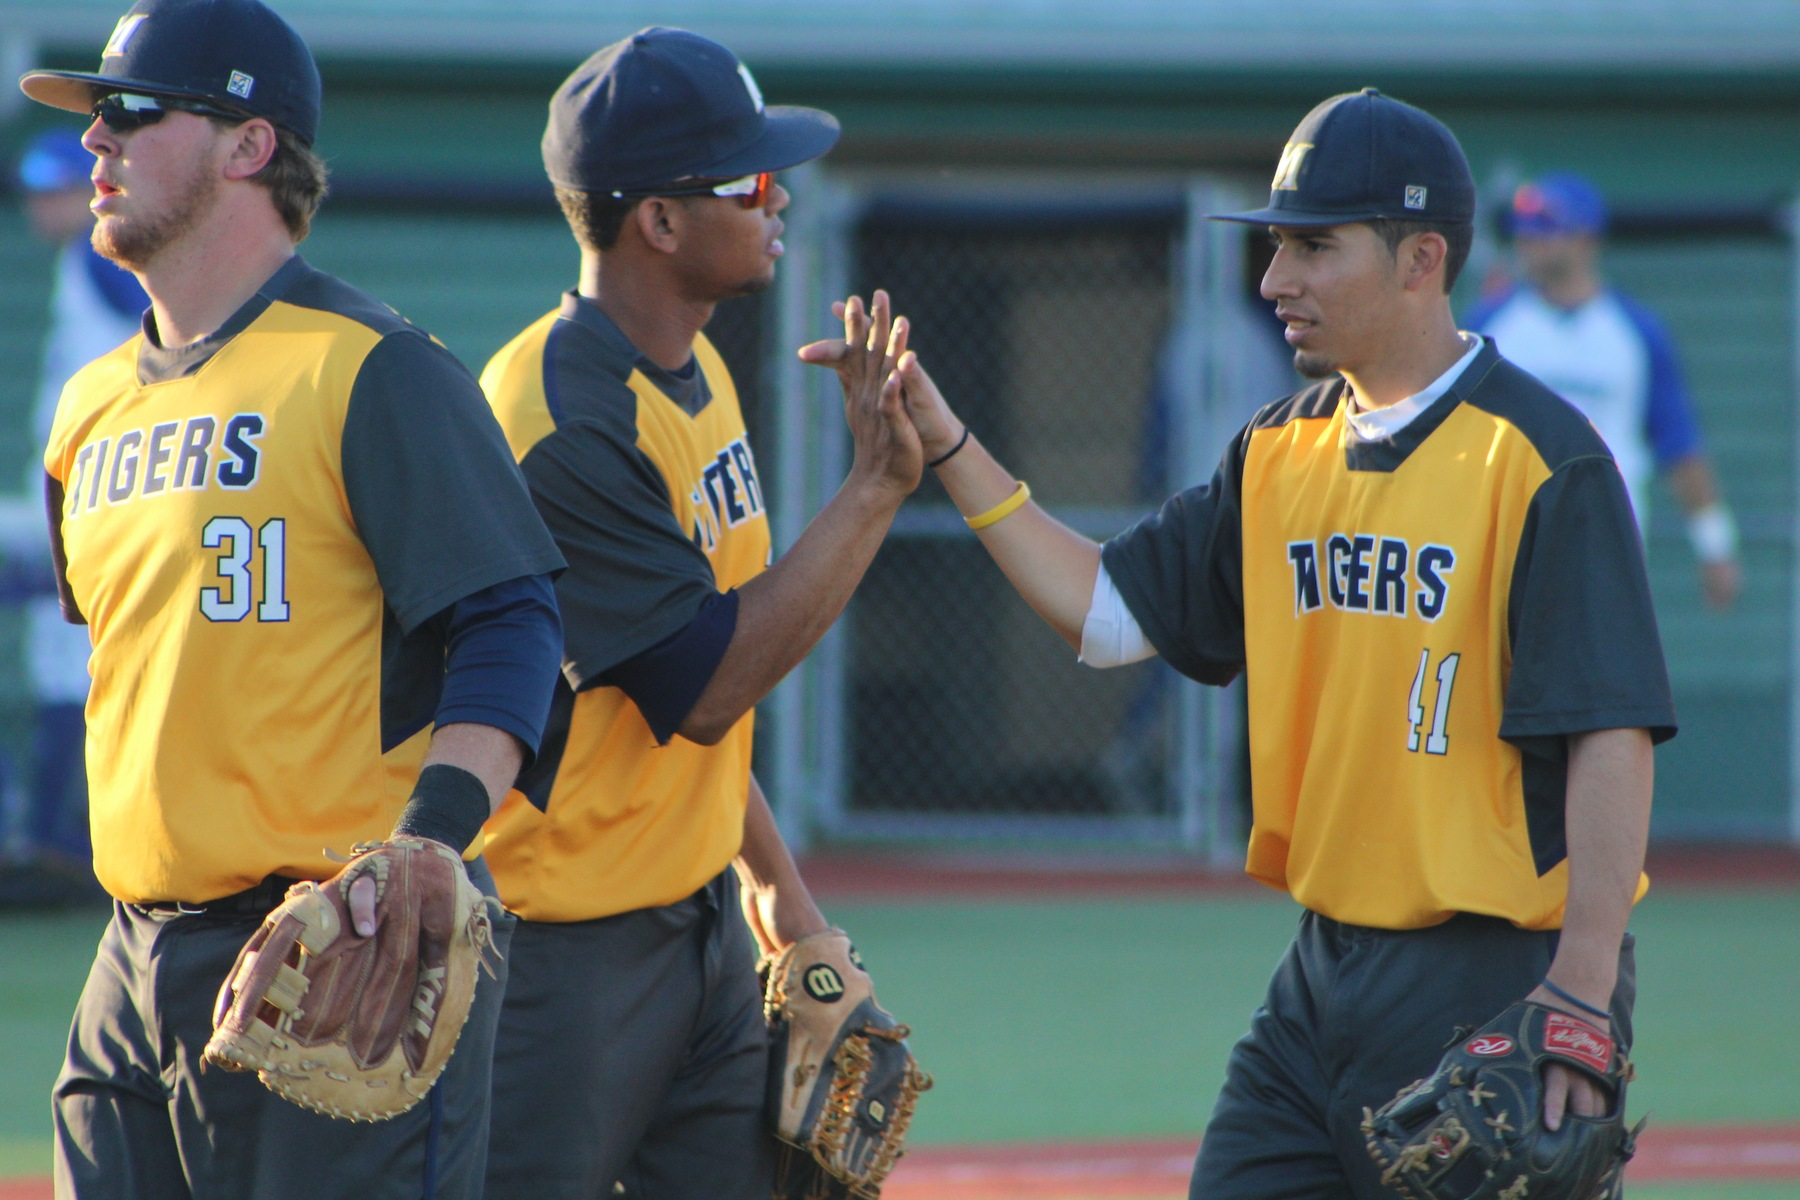 Diogen Ceballos and Snayder Ruiz combined to drive in five runs in the game two win for the Tigers